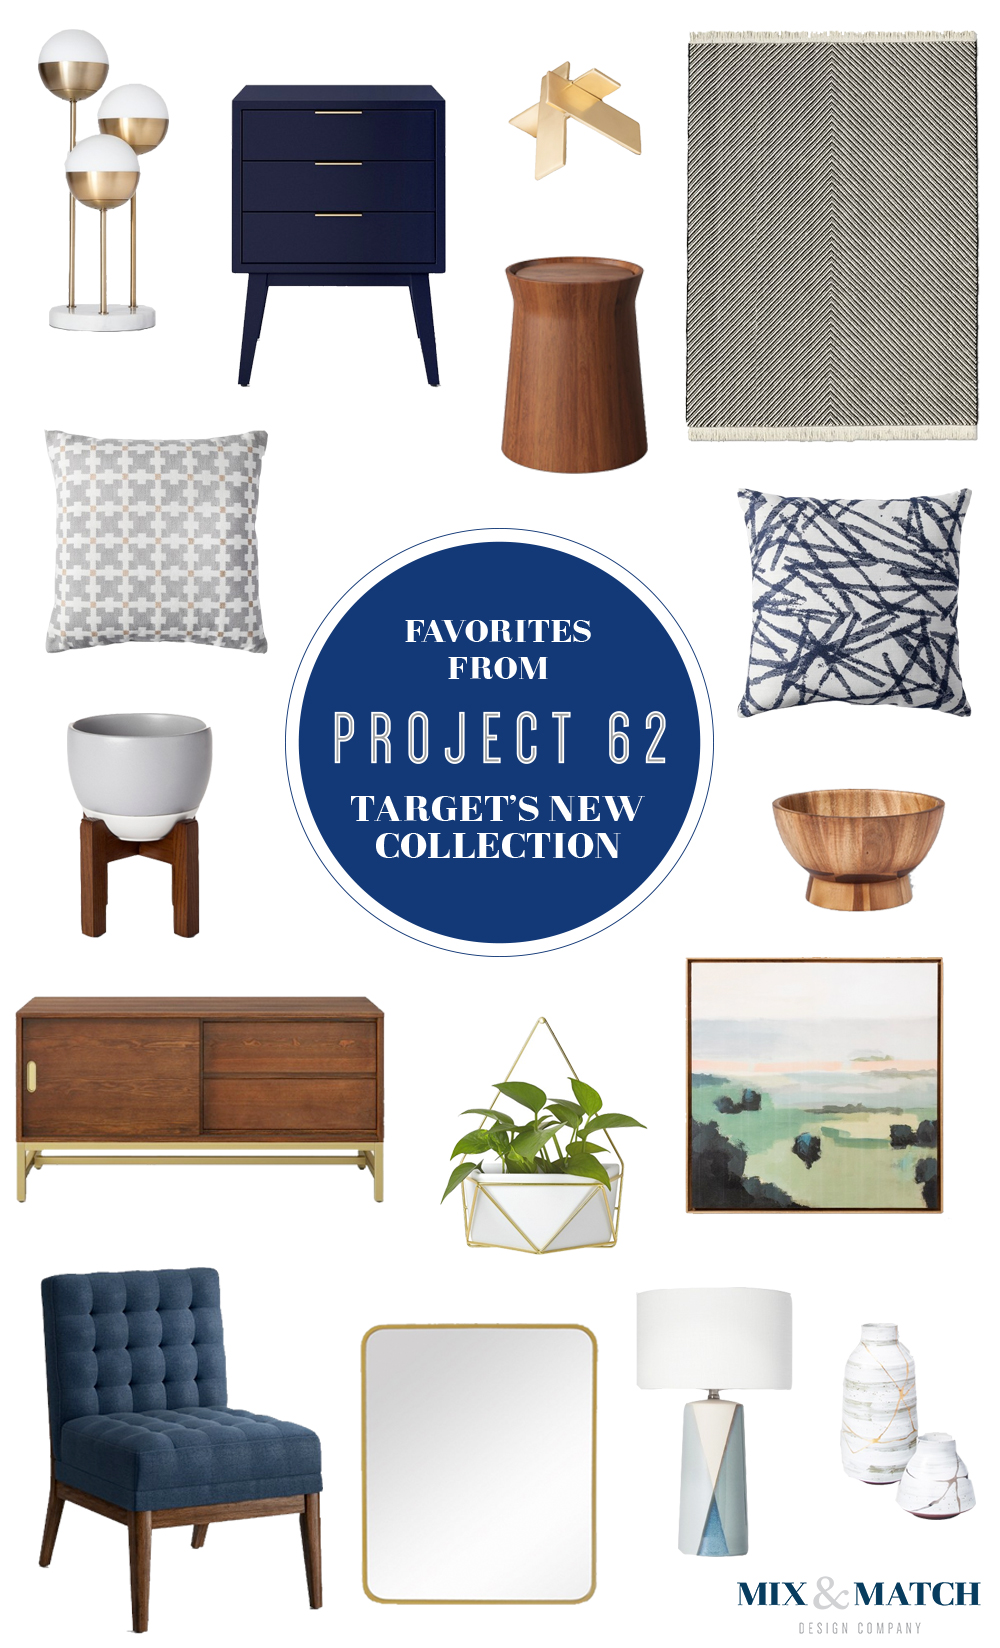 My favorites from Target's new Project 62 collection. // affordable mid-century modern furniture, mid-century modern furniture for less, mid-century modern furniture target